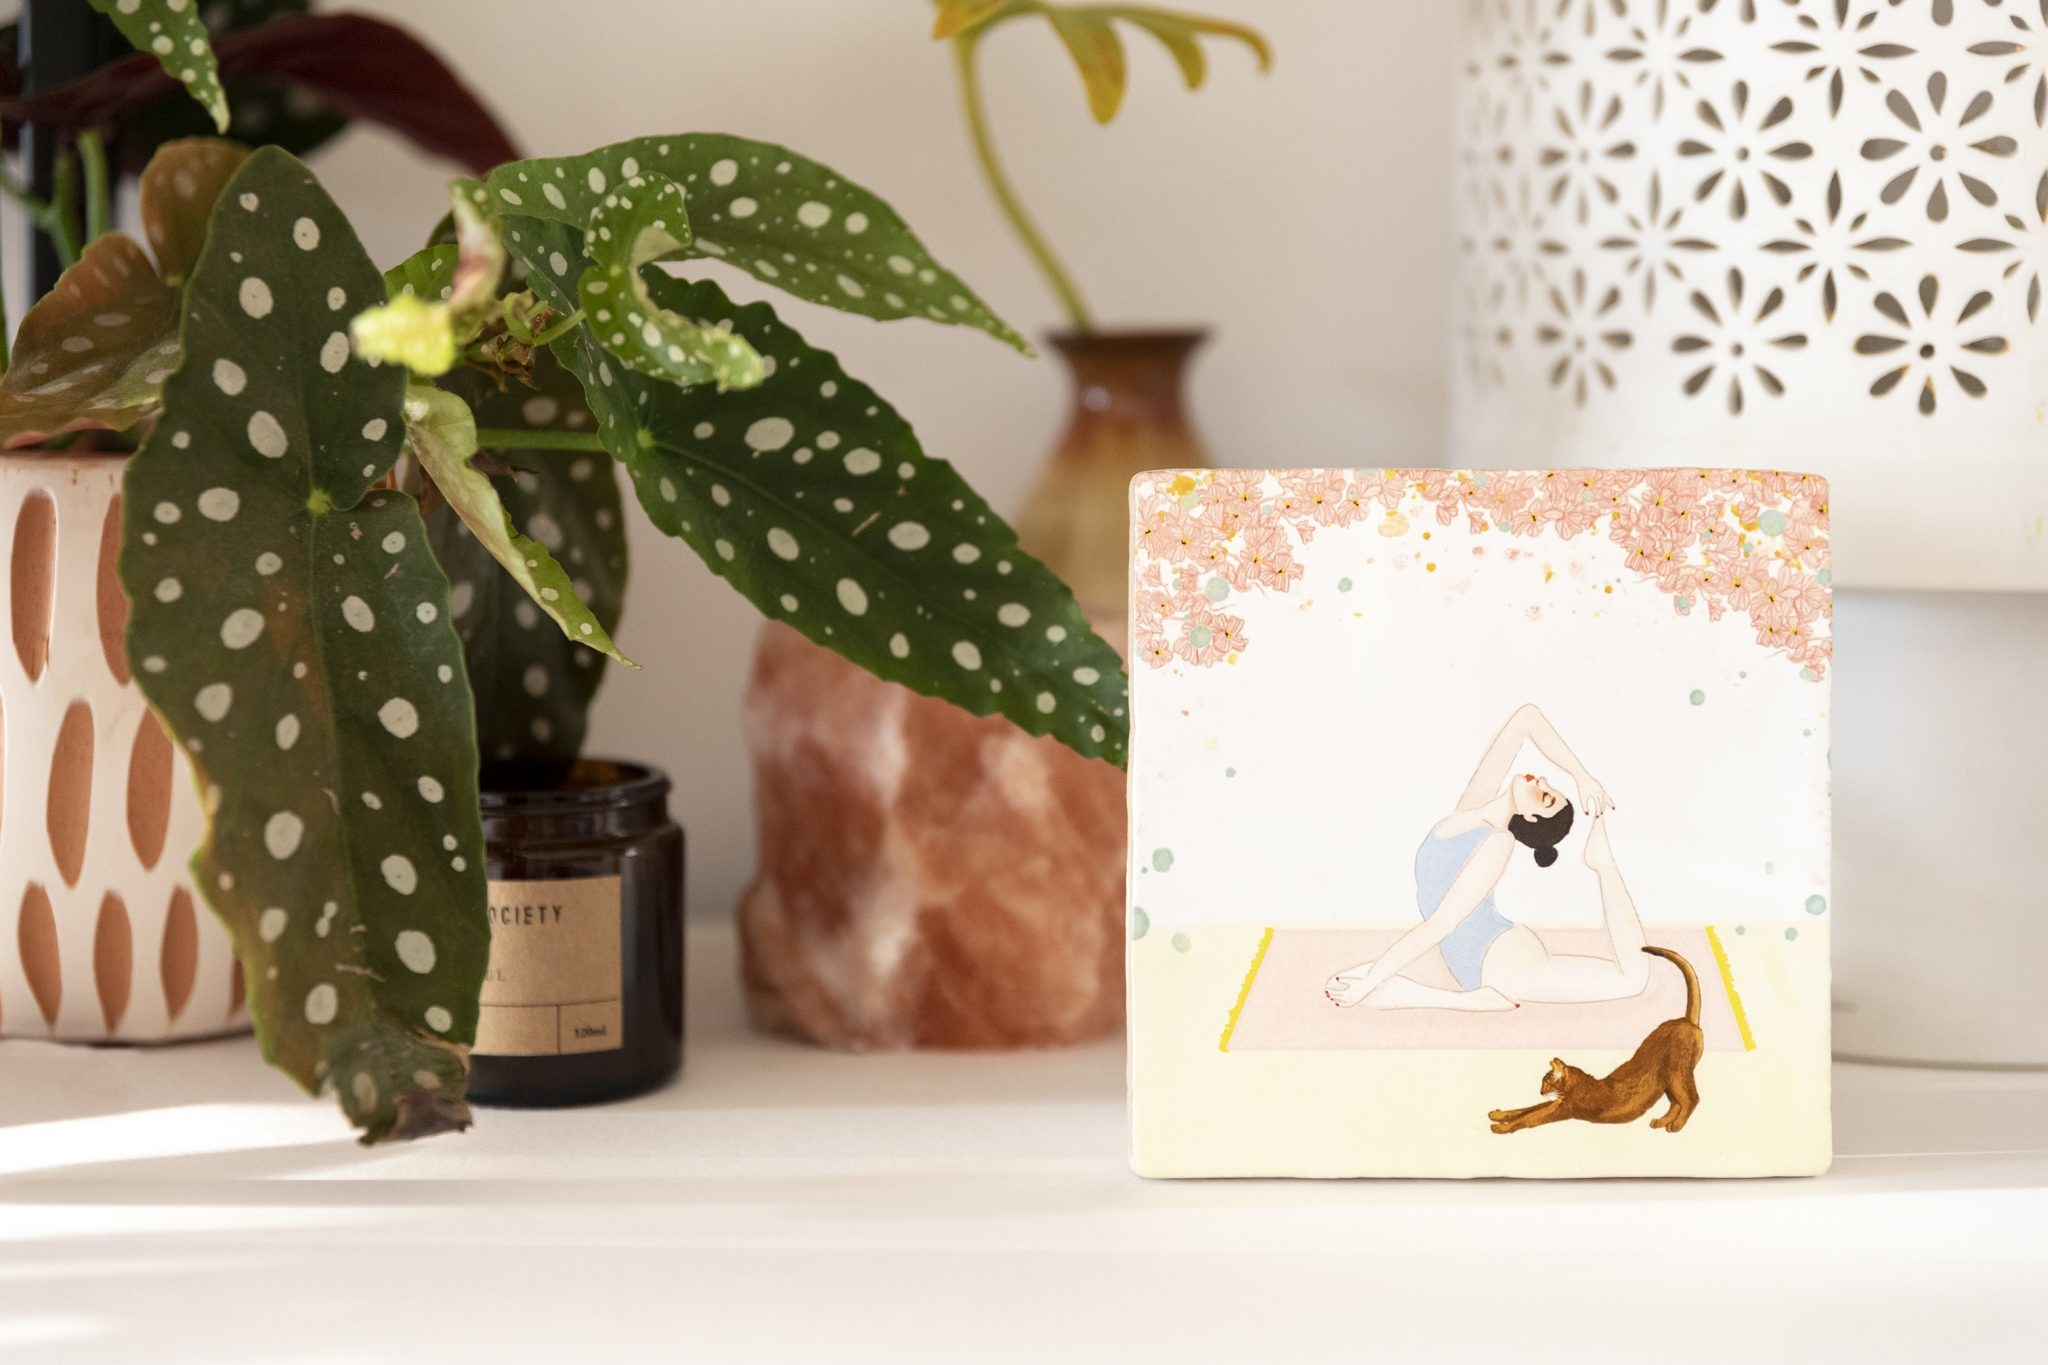 Storytiles Decorative Tile Strike a Pose small